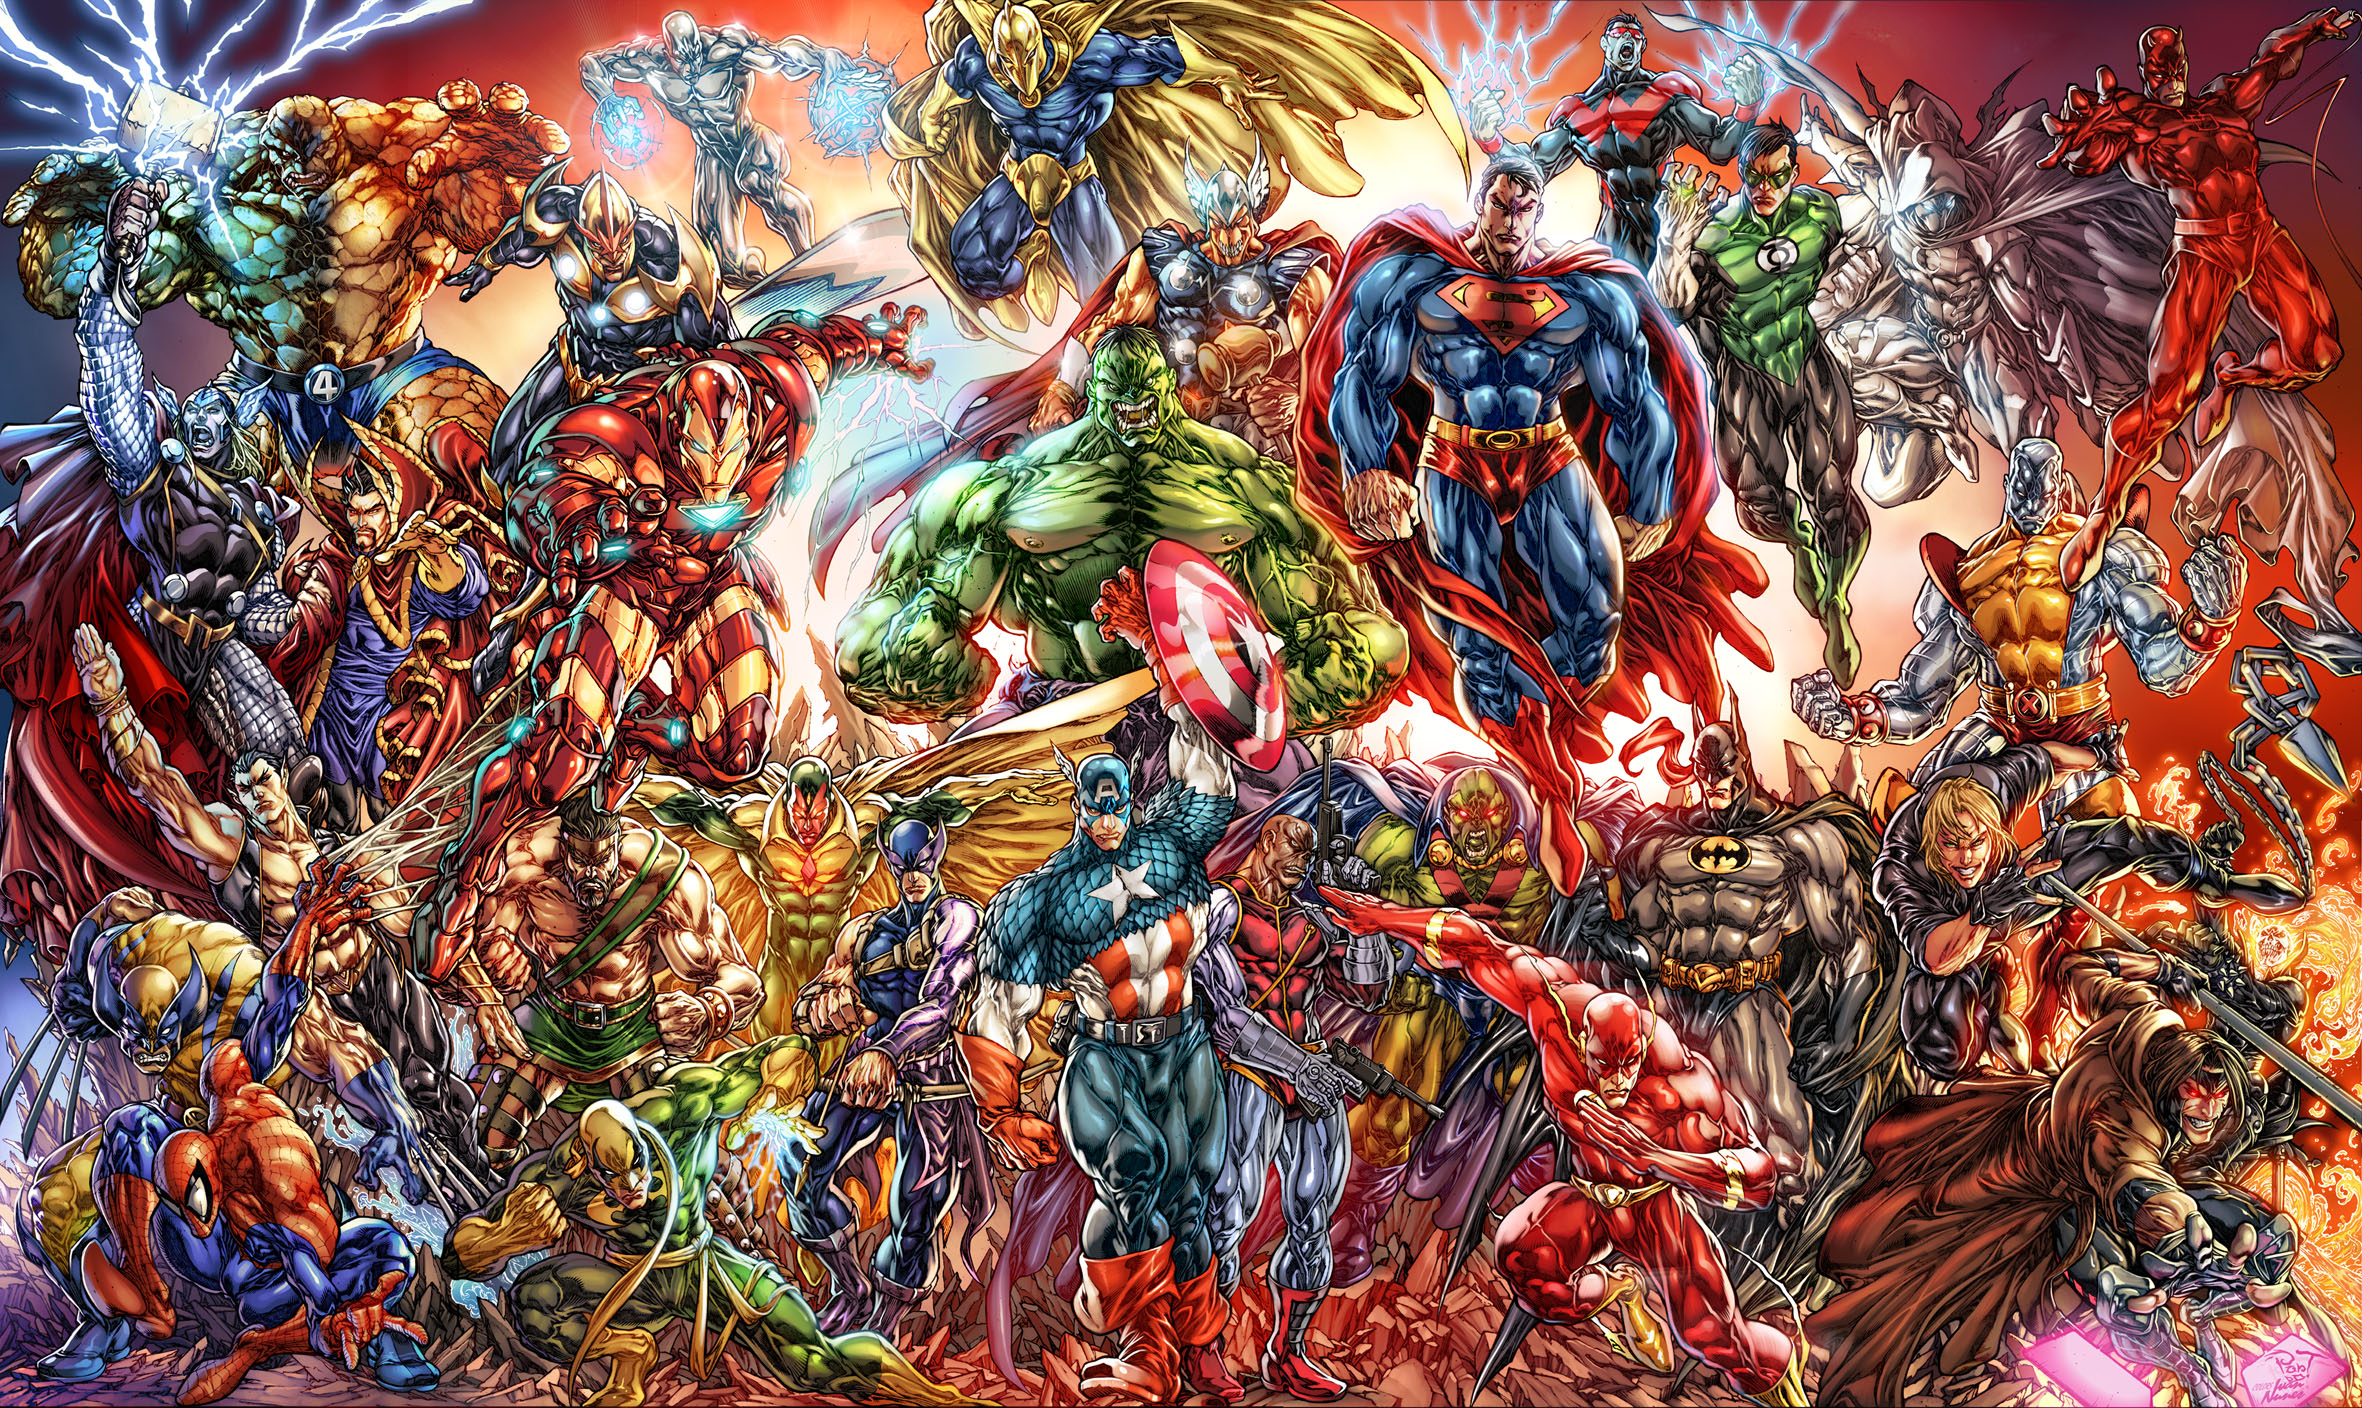 Download Marvel Comics Wallpaper Movies Picture Image pictures in high 2362x1408